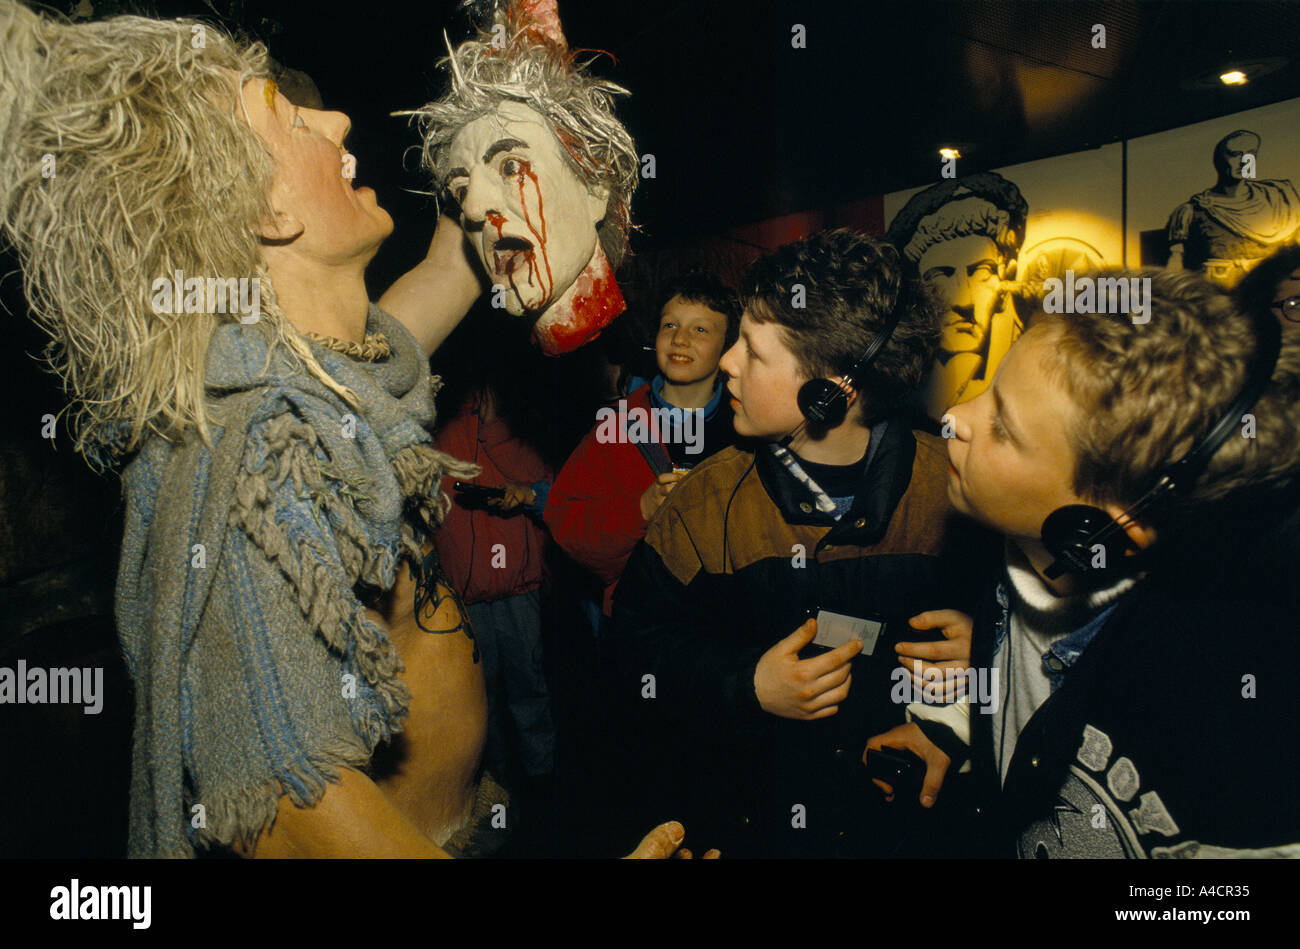 CHILDREN LOOKING AT DISPLAY OF DRUID RITUALS, MAN HOLDING A BLEEDING HEAD. WHITE CLIFFS EXPERIENCE, DOVER, ENGLAND, MARCH 1994 - Stock Image